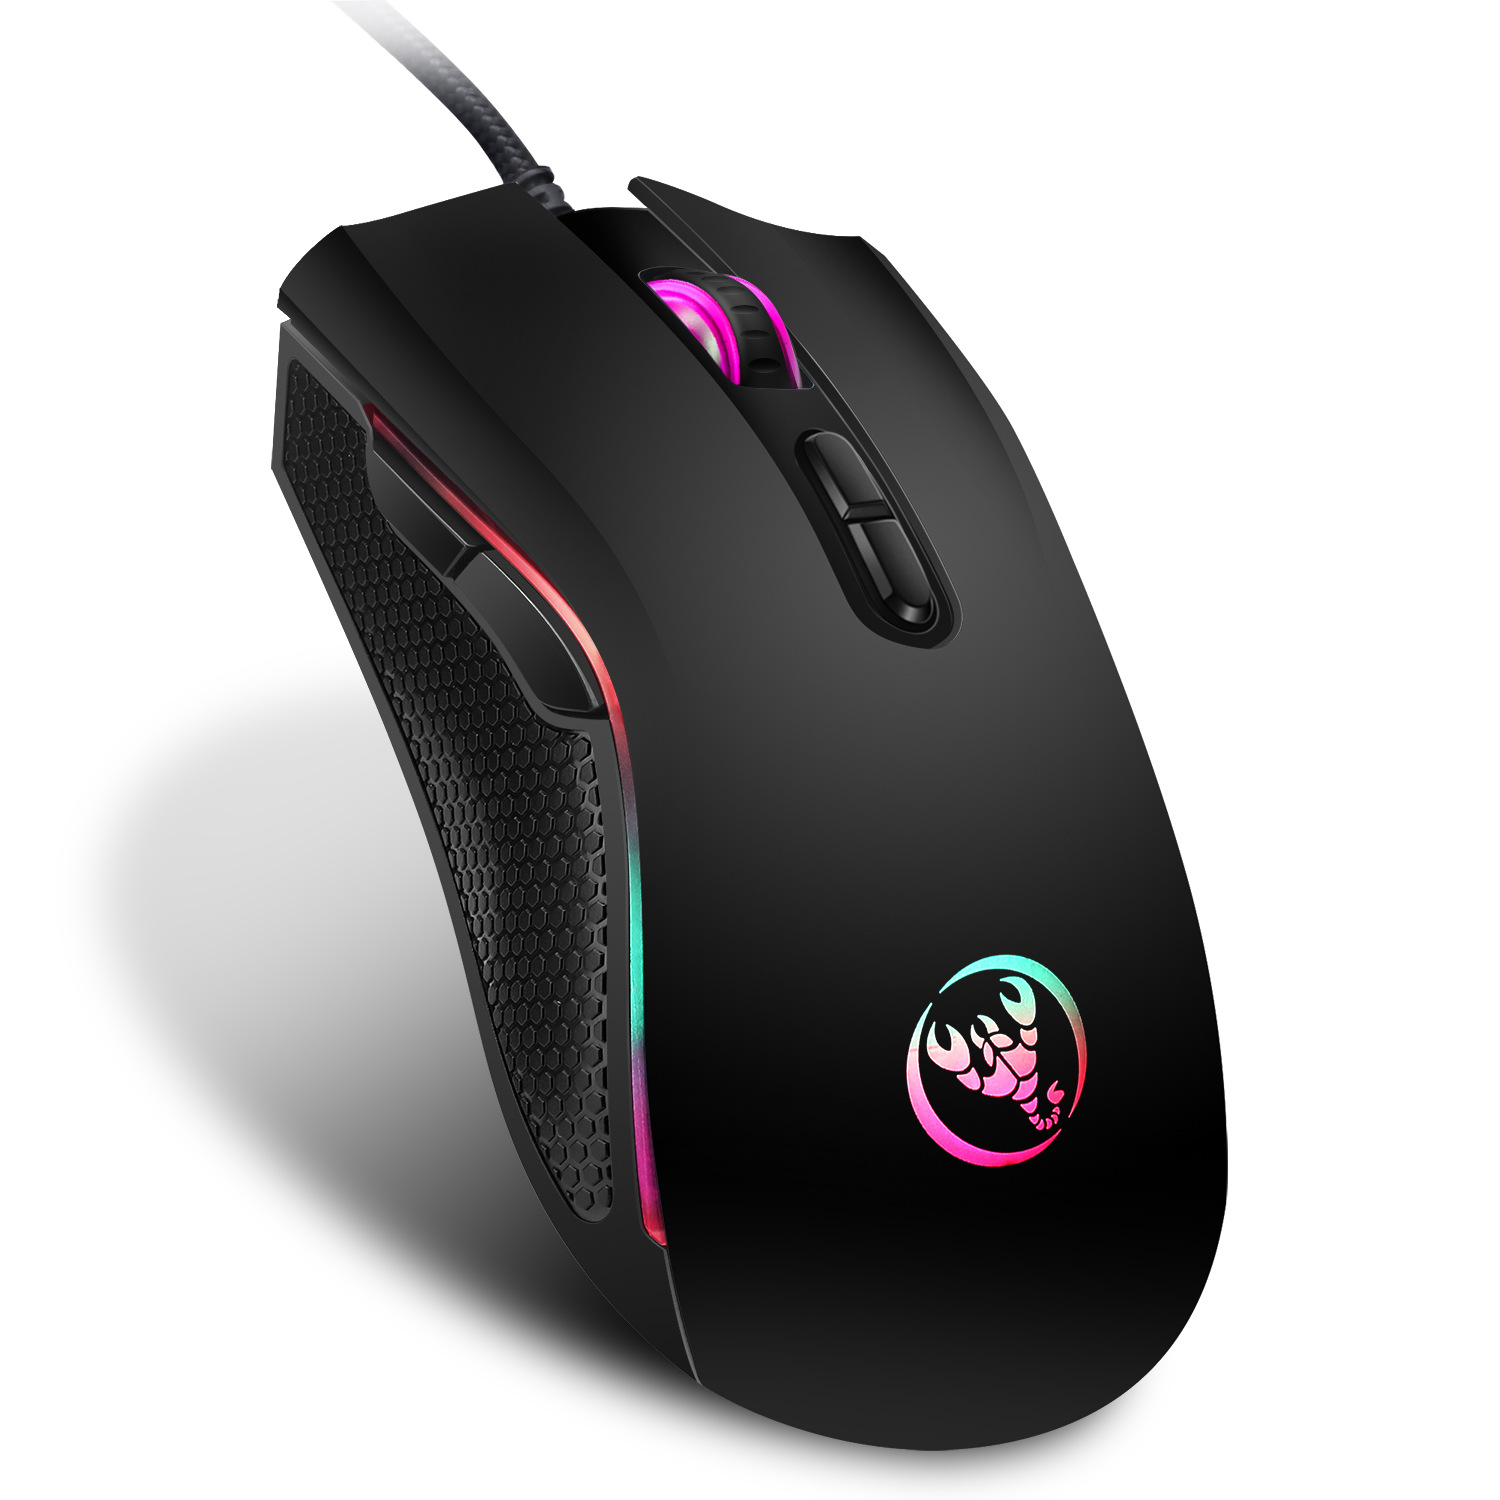 Hongsund High-end optical professional gaming mouse with 7 bright colors LED backlit